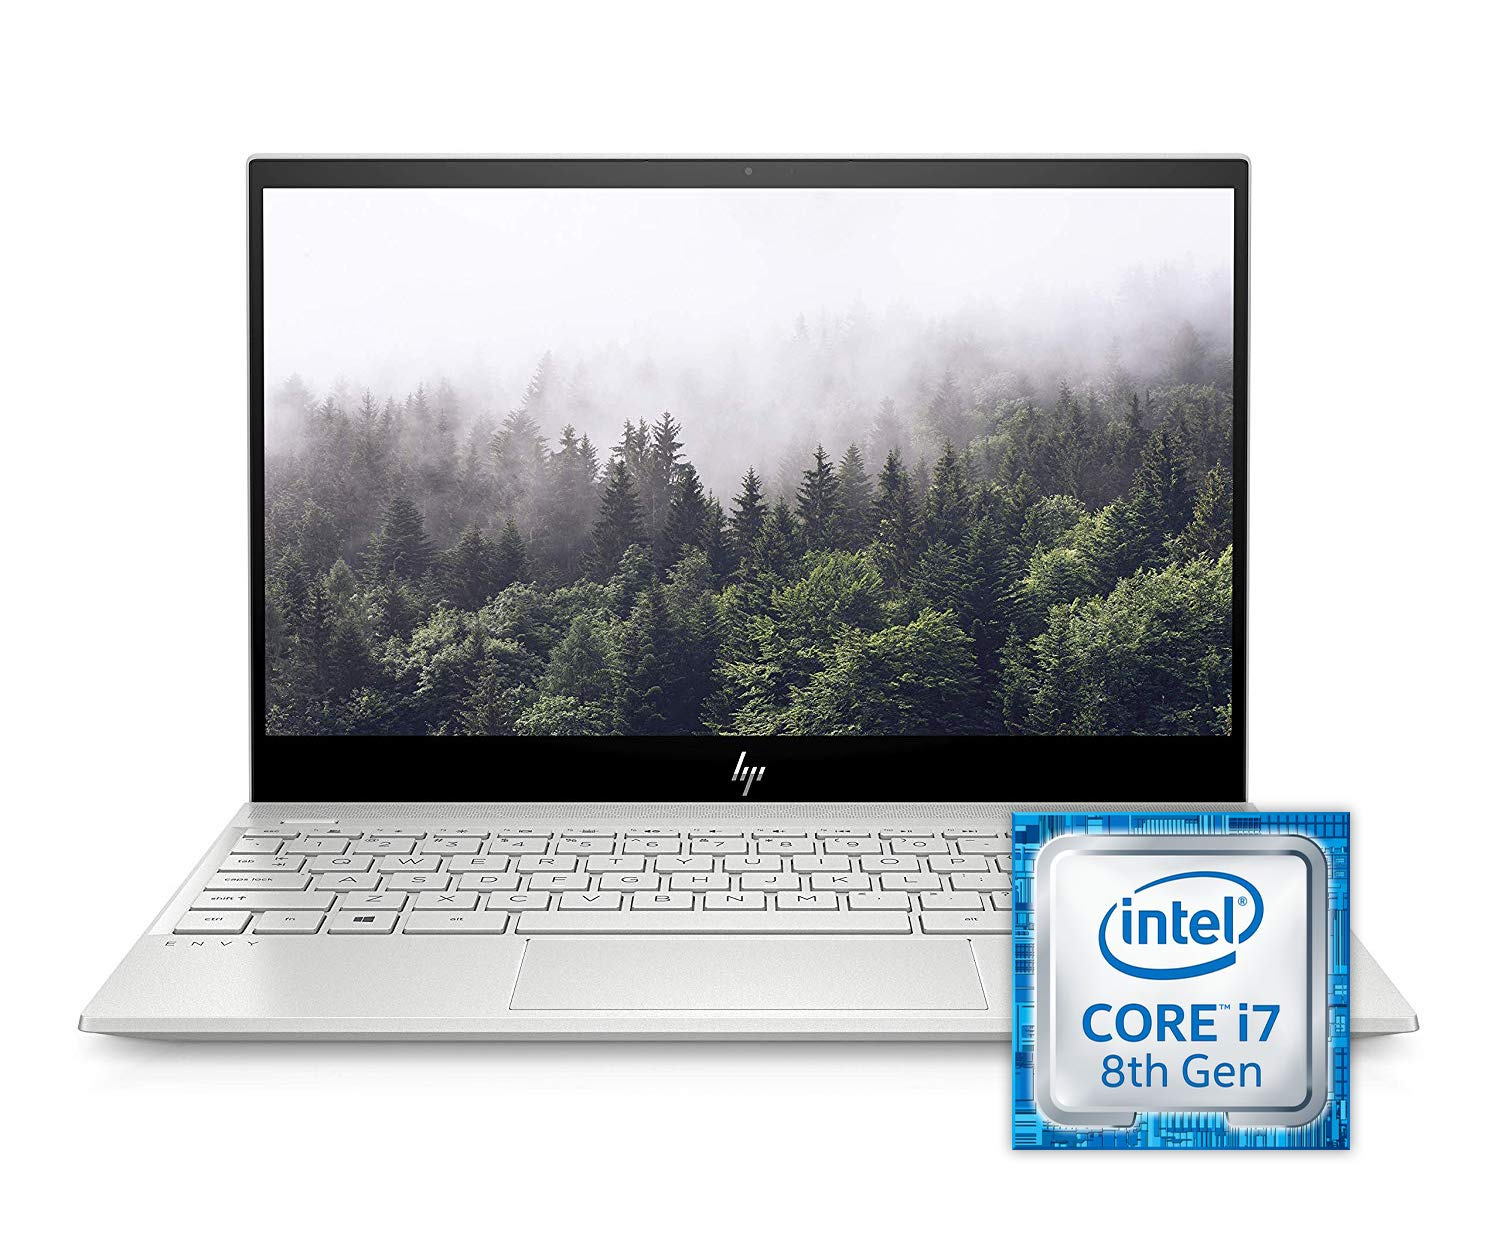 HP ENVY 13 - Best Price: $999Best Previous Price $1200Current price 7/15 10AM PSThttps://amzn.to/2lr31xP